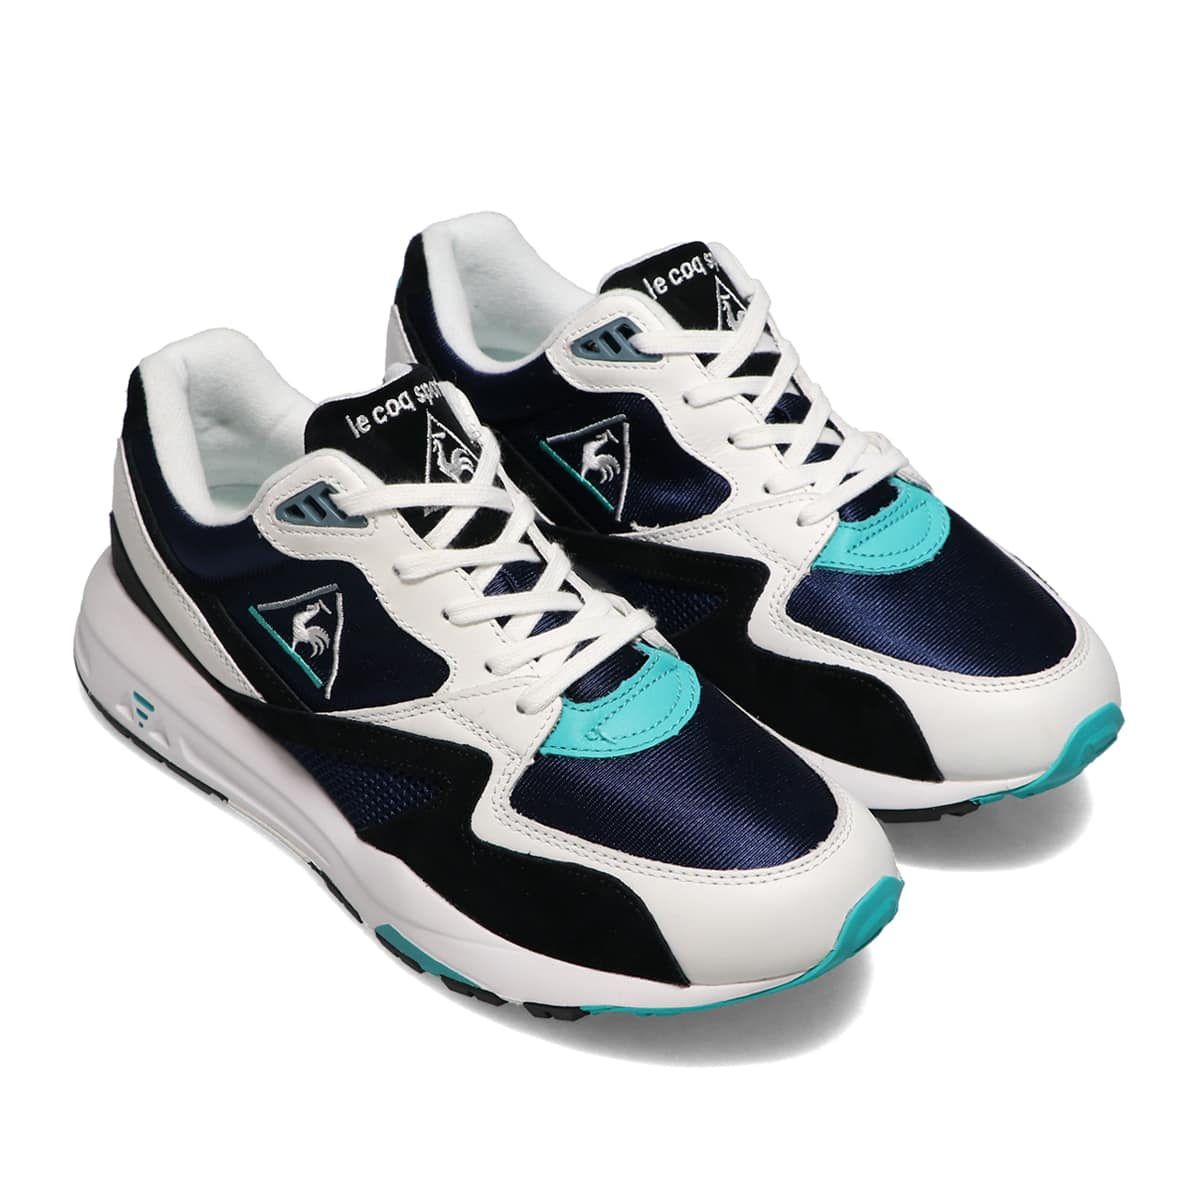 le coq sportif LCS R800 Z1 OG WHITE 21SS-I_photo_large